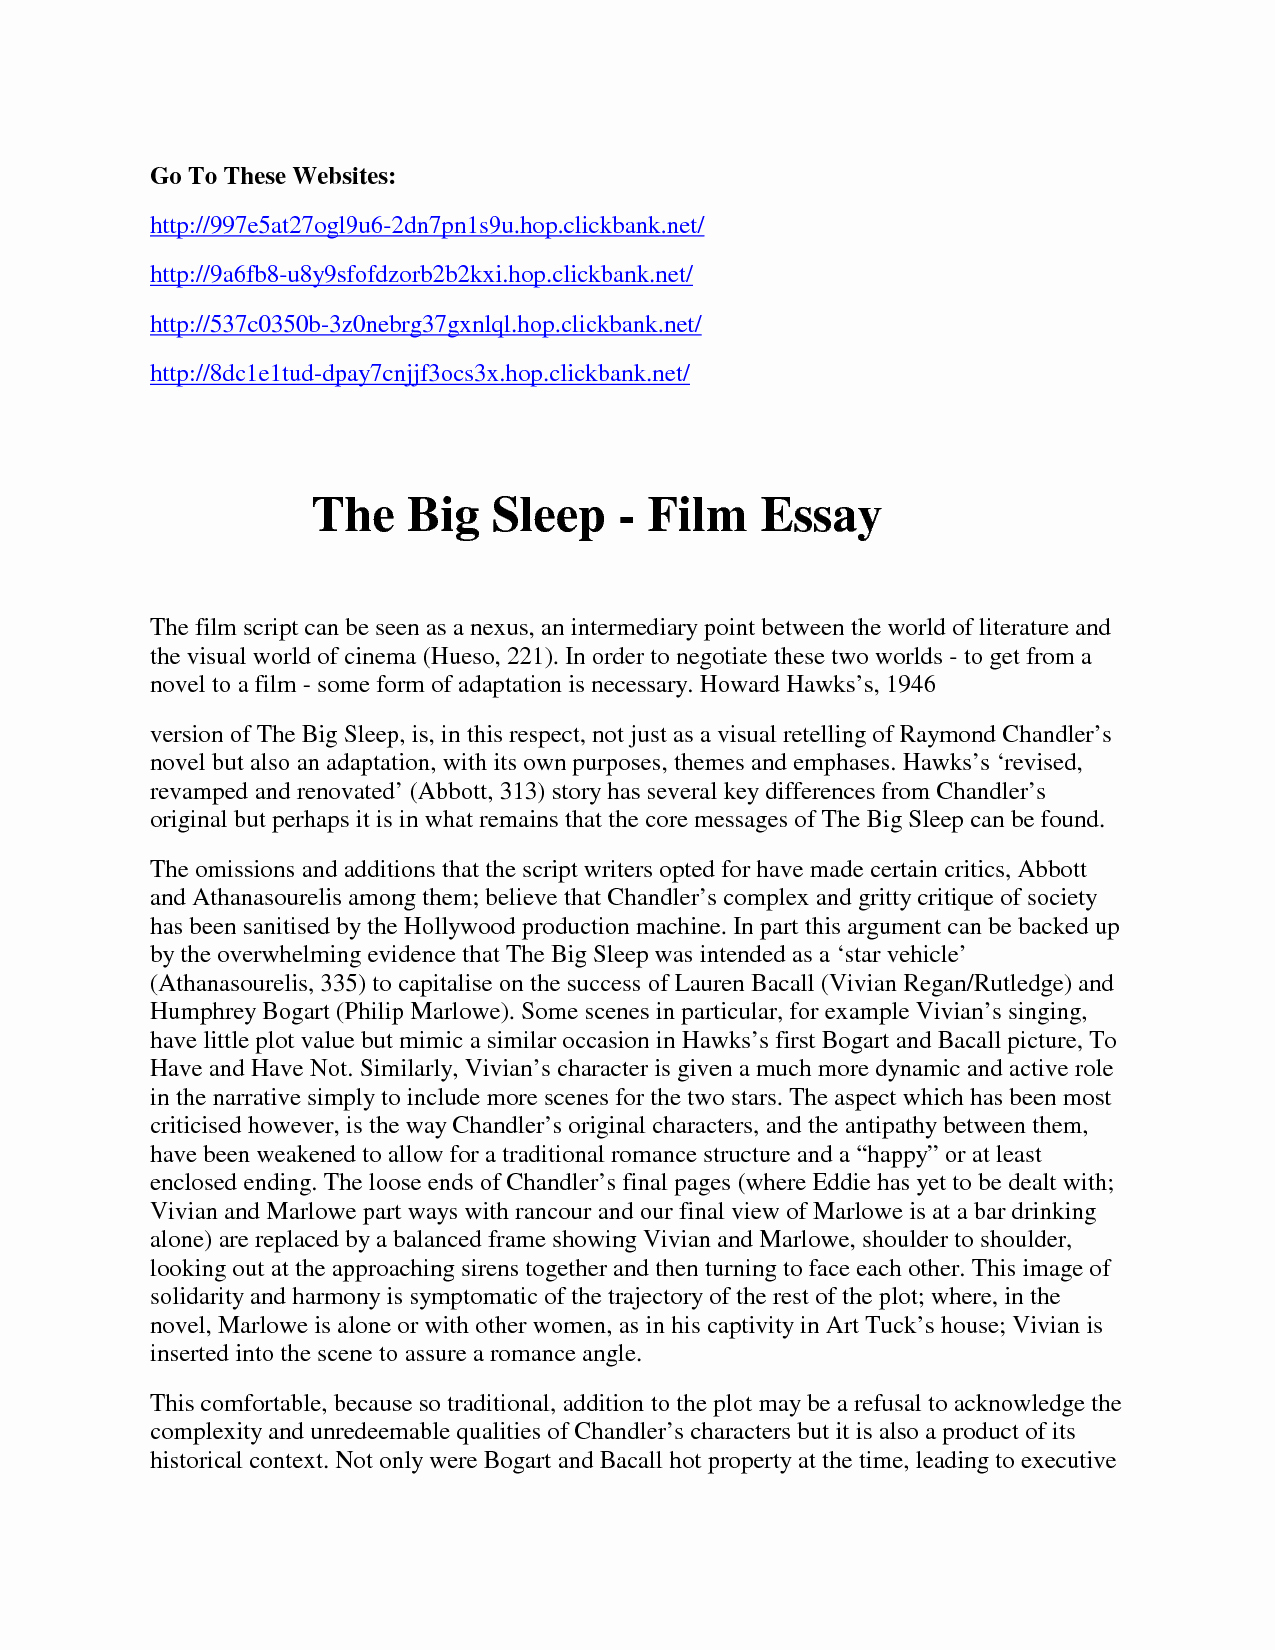 Sample Movie Review Essay Unique Review Essay Example Movie Critic the Way In which